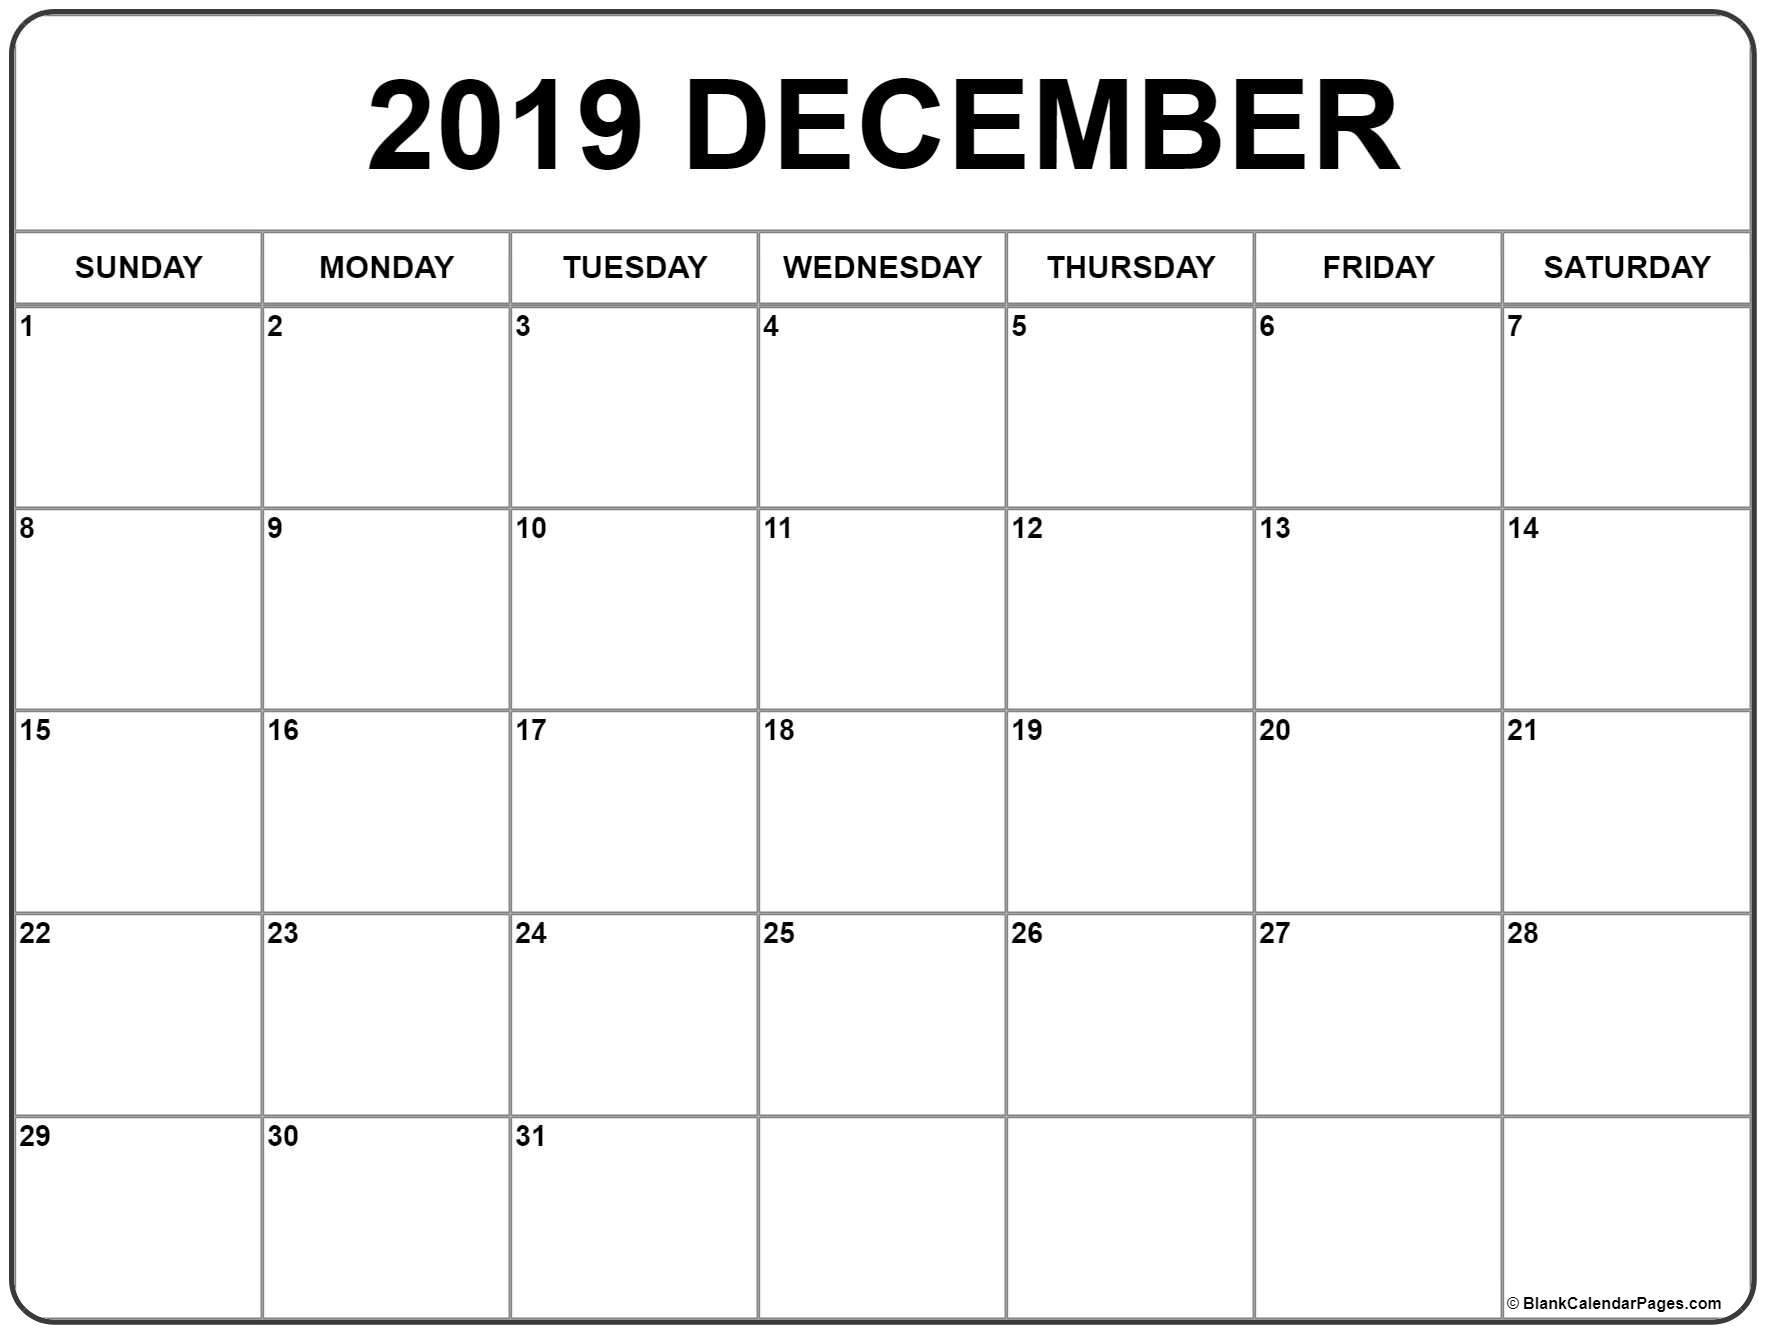 December 2019 Calendar | Free Printable Monthly Calendars